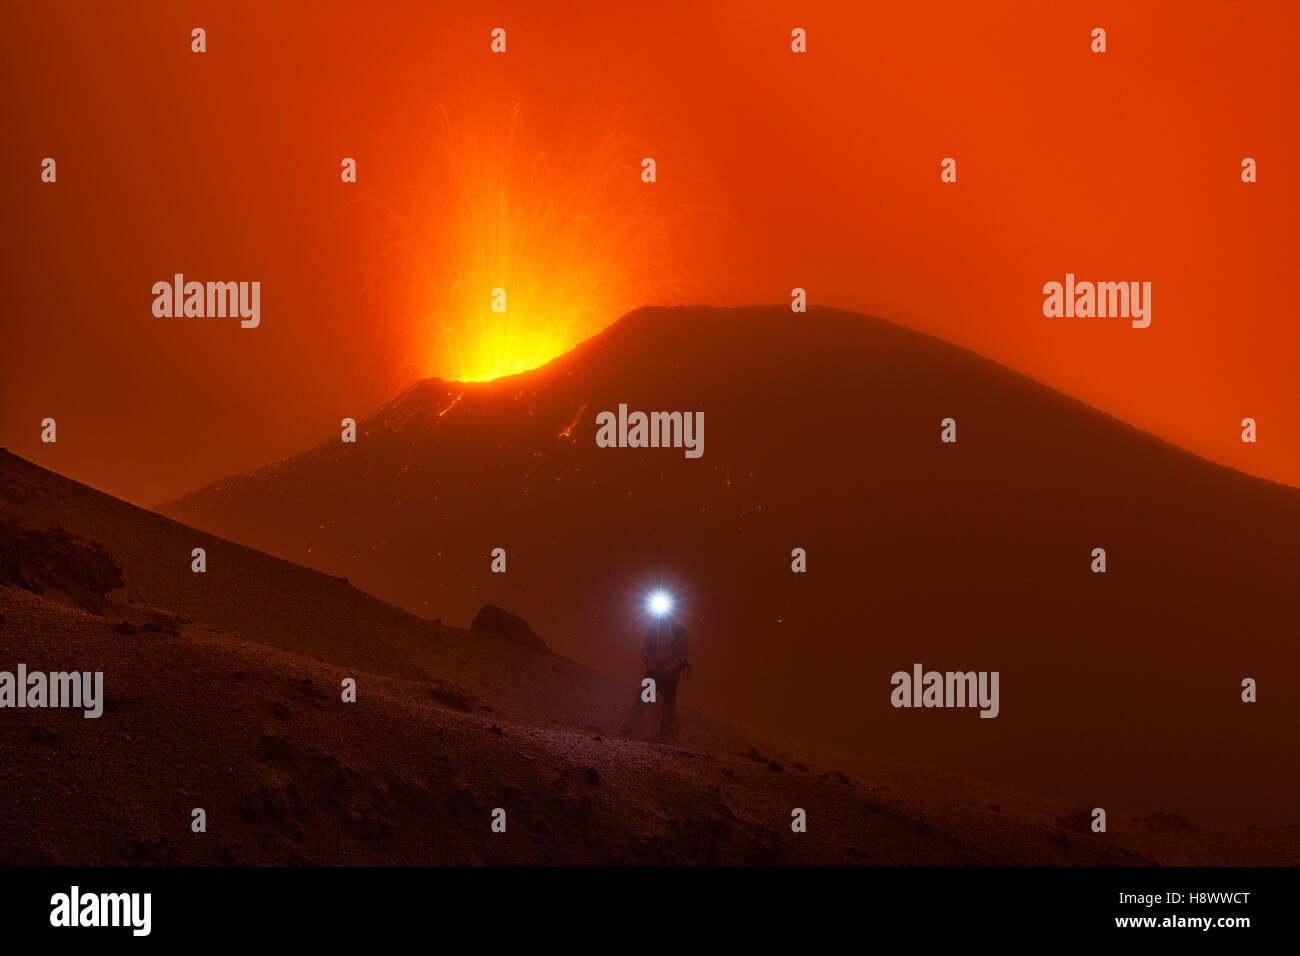 Volcanologist approach on Piton de la Fournaise in activity, Volcano eruption of May 2015, Reunion - Stock Image